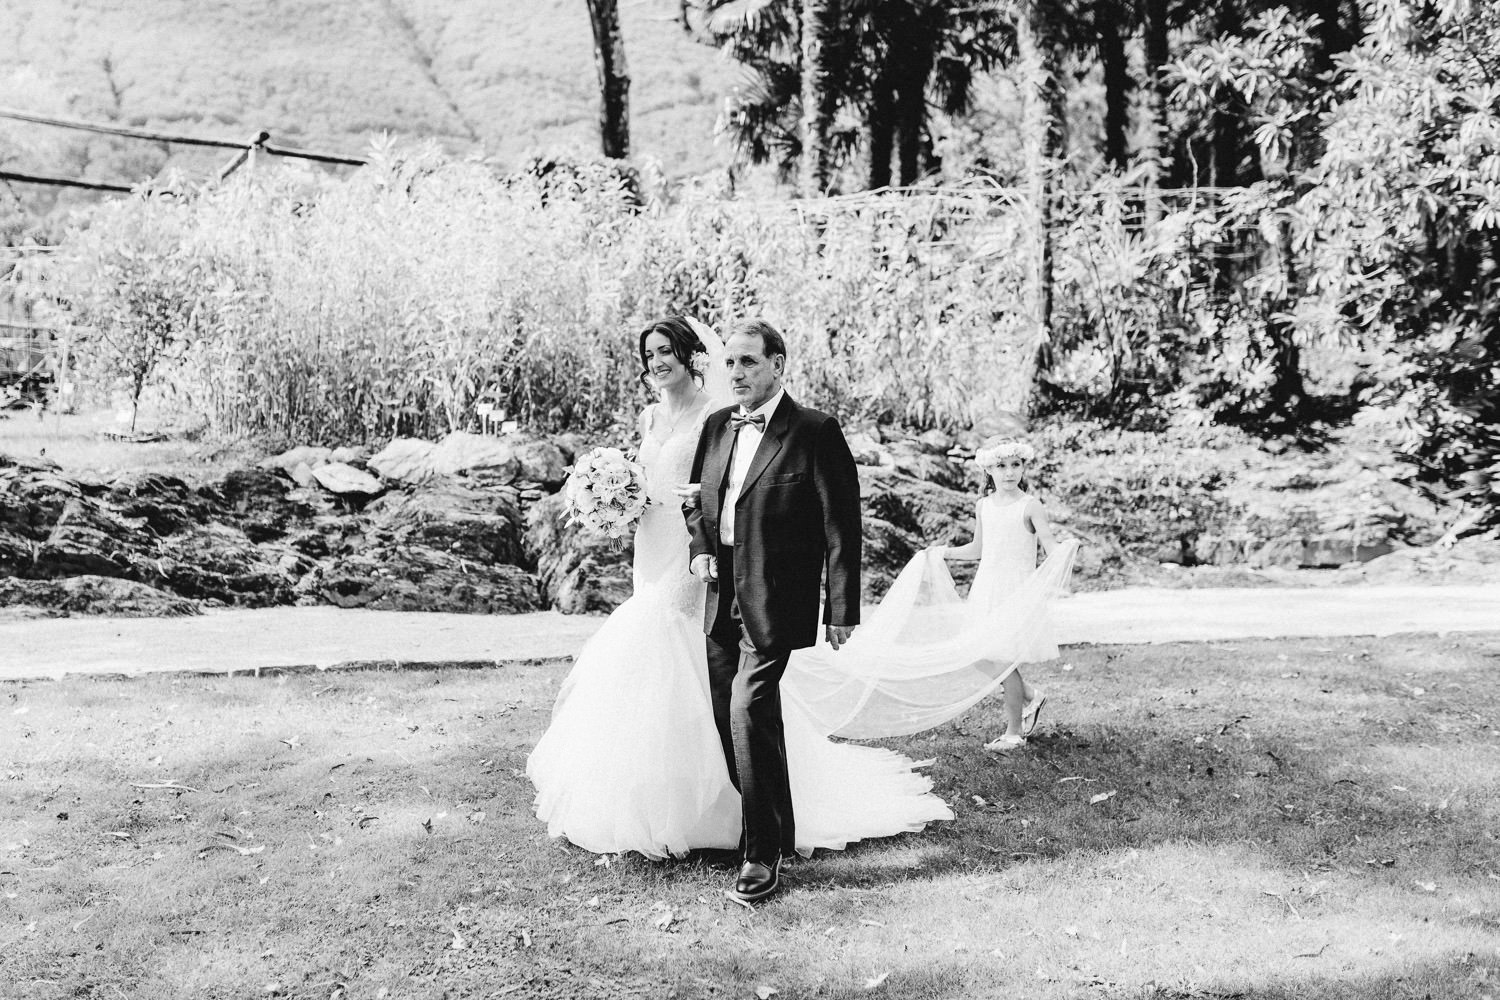 davidandkathrin-com-ticino-brissago-wedding-photographer-075